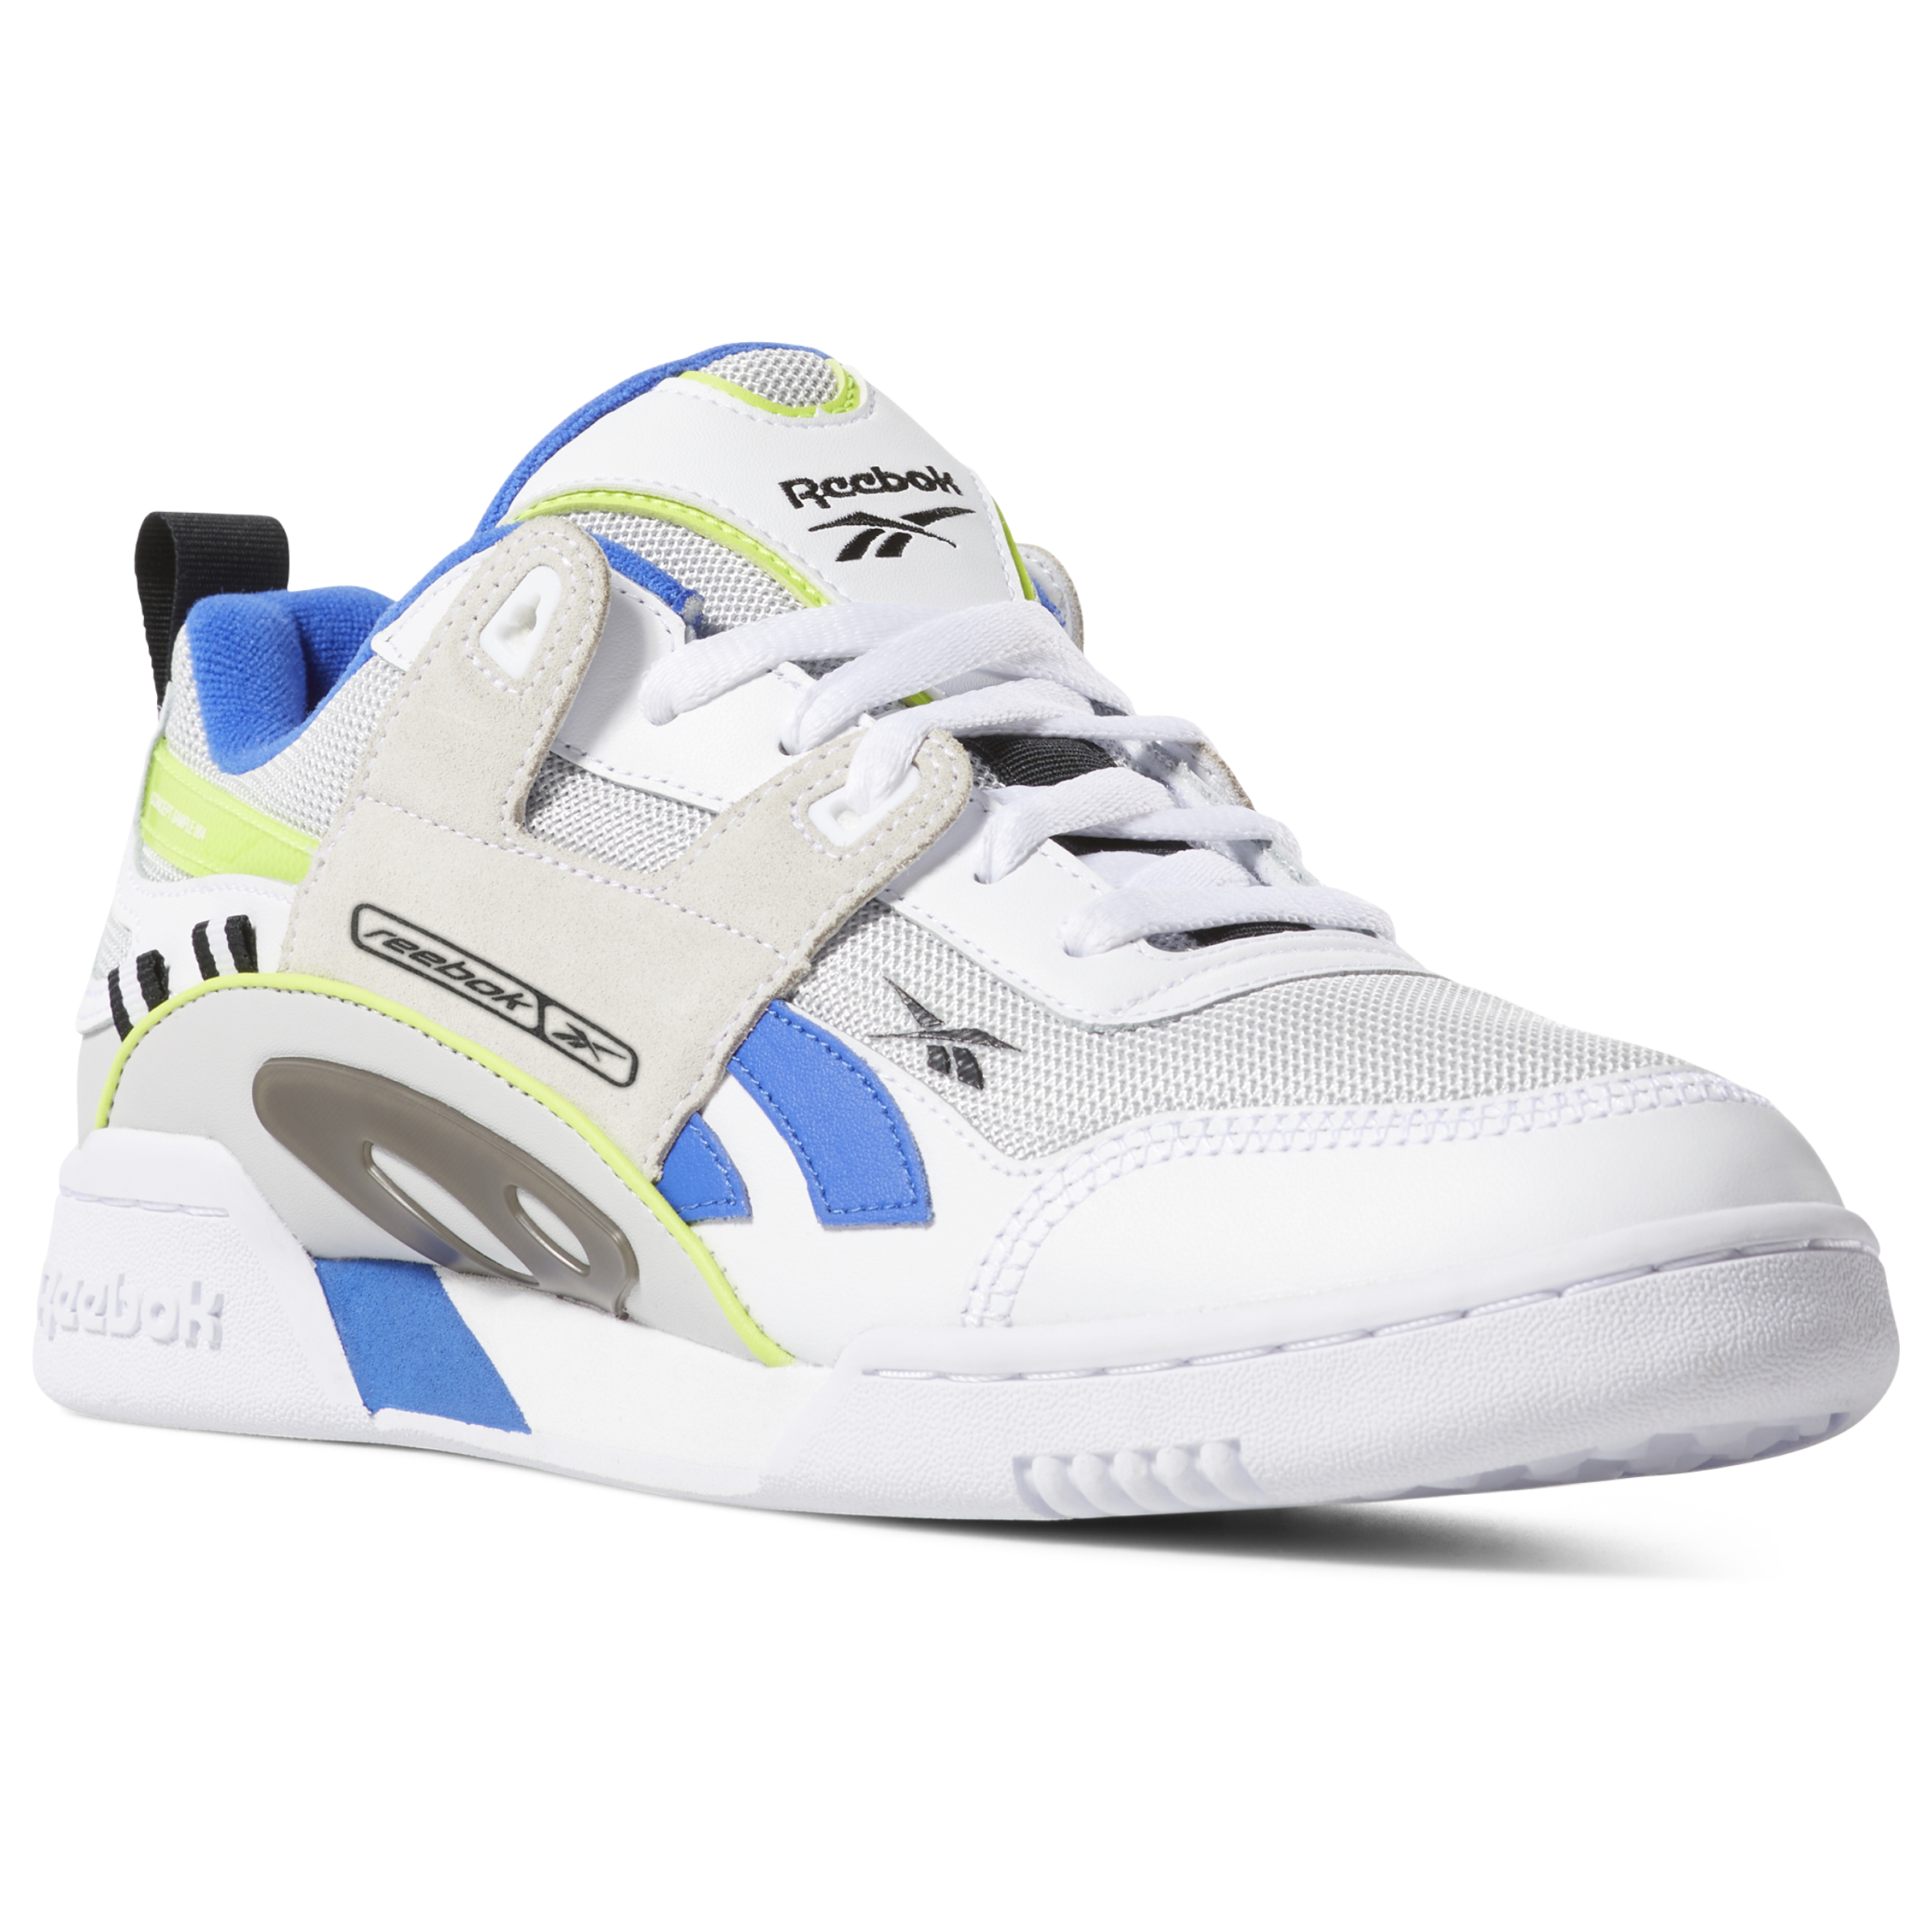 Reebok-Men-039-s-Workout-Plus-ATI-90s-Shoes thumbnail 10